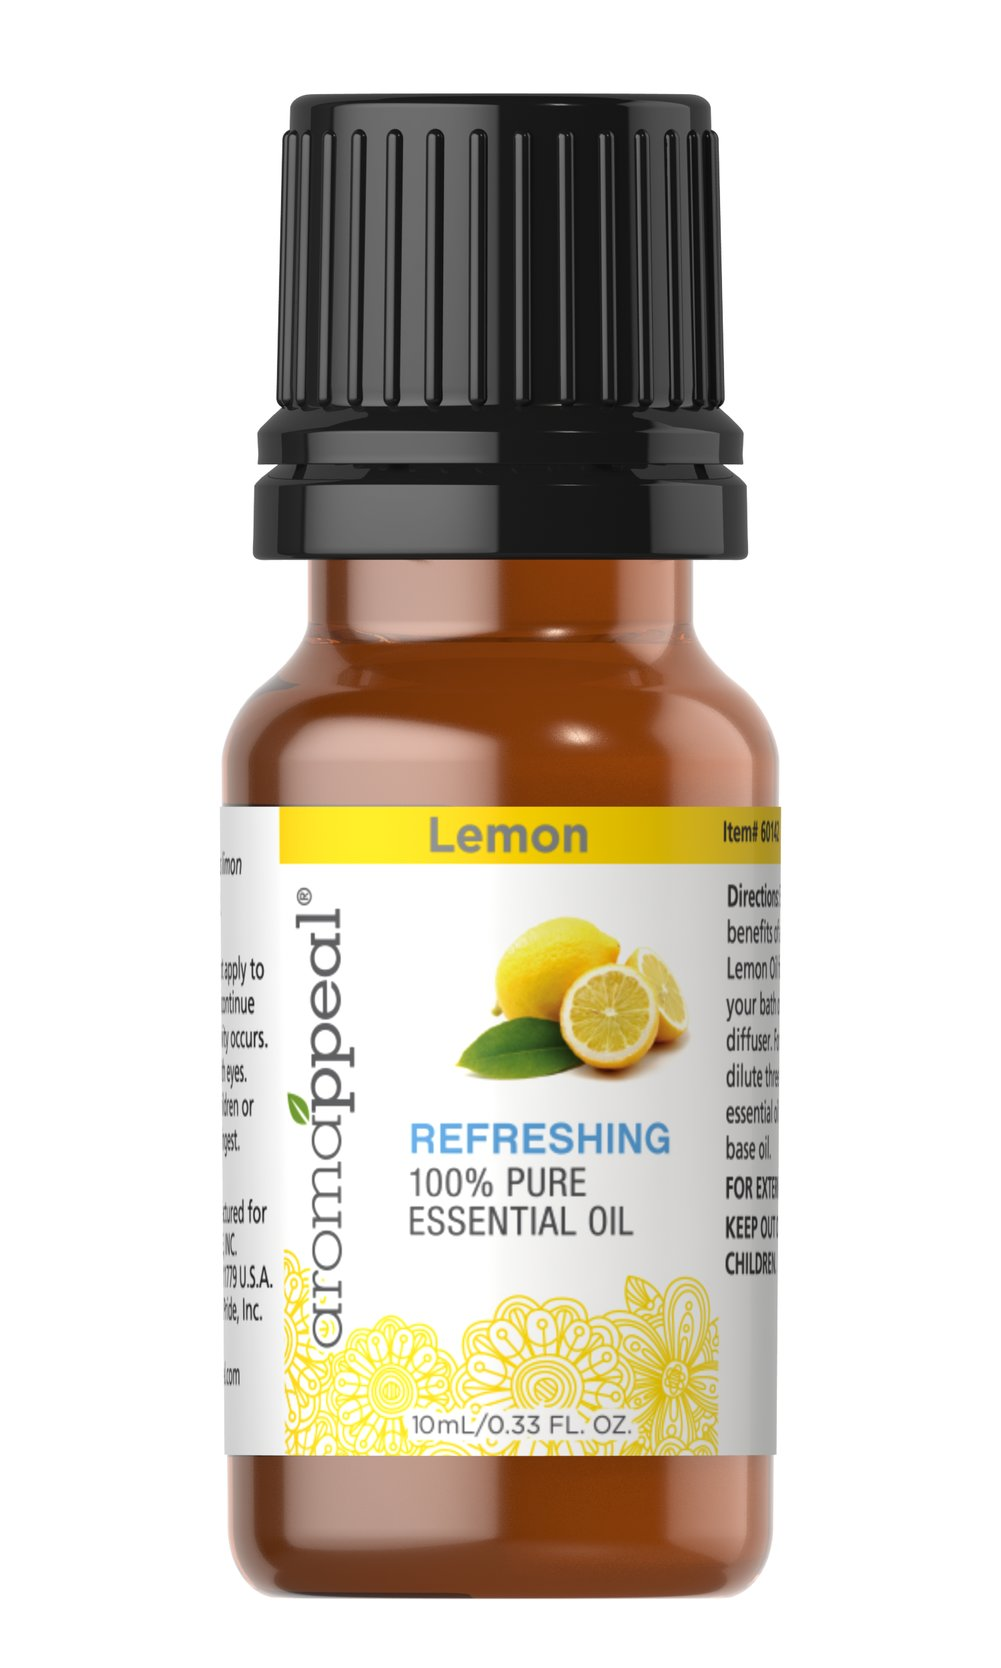 "Lemon 100% Pure Essential Oil <p>Arouse your senses with the cleansing, purifying freshness of Lemon Oil. Treasured for its sweetly mild, citrusy fragrance, Lemon Oil can be applied all over your body – especially your face – to soften and smooth your skin. </p><ul><li><span class=""bold-pink"">Traditional Uses:</span> Cleansing and purifying, circulation, respiratory health, immune health, digestion, skin health – especially around the face. </li&g"